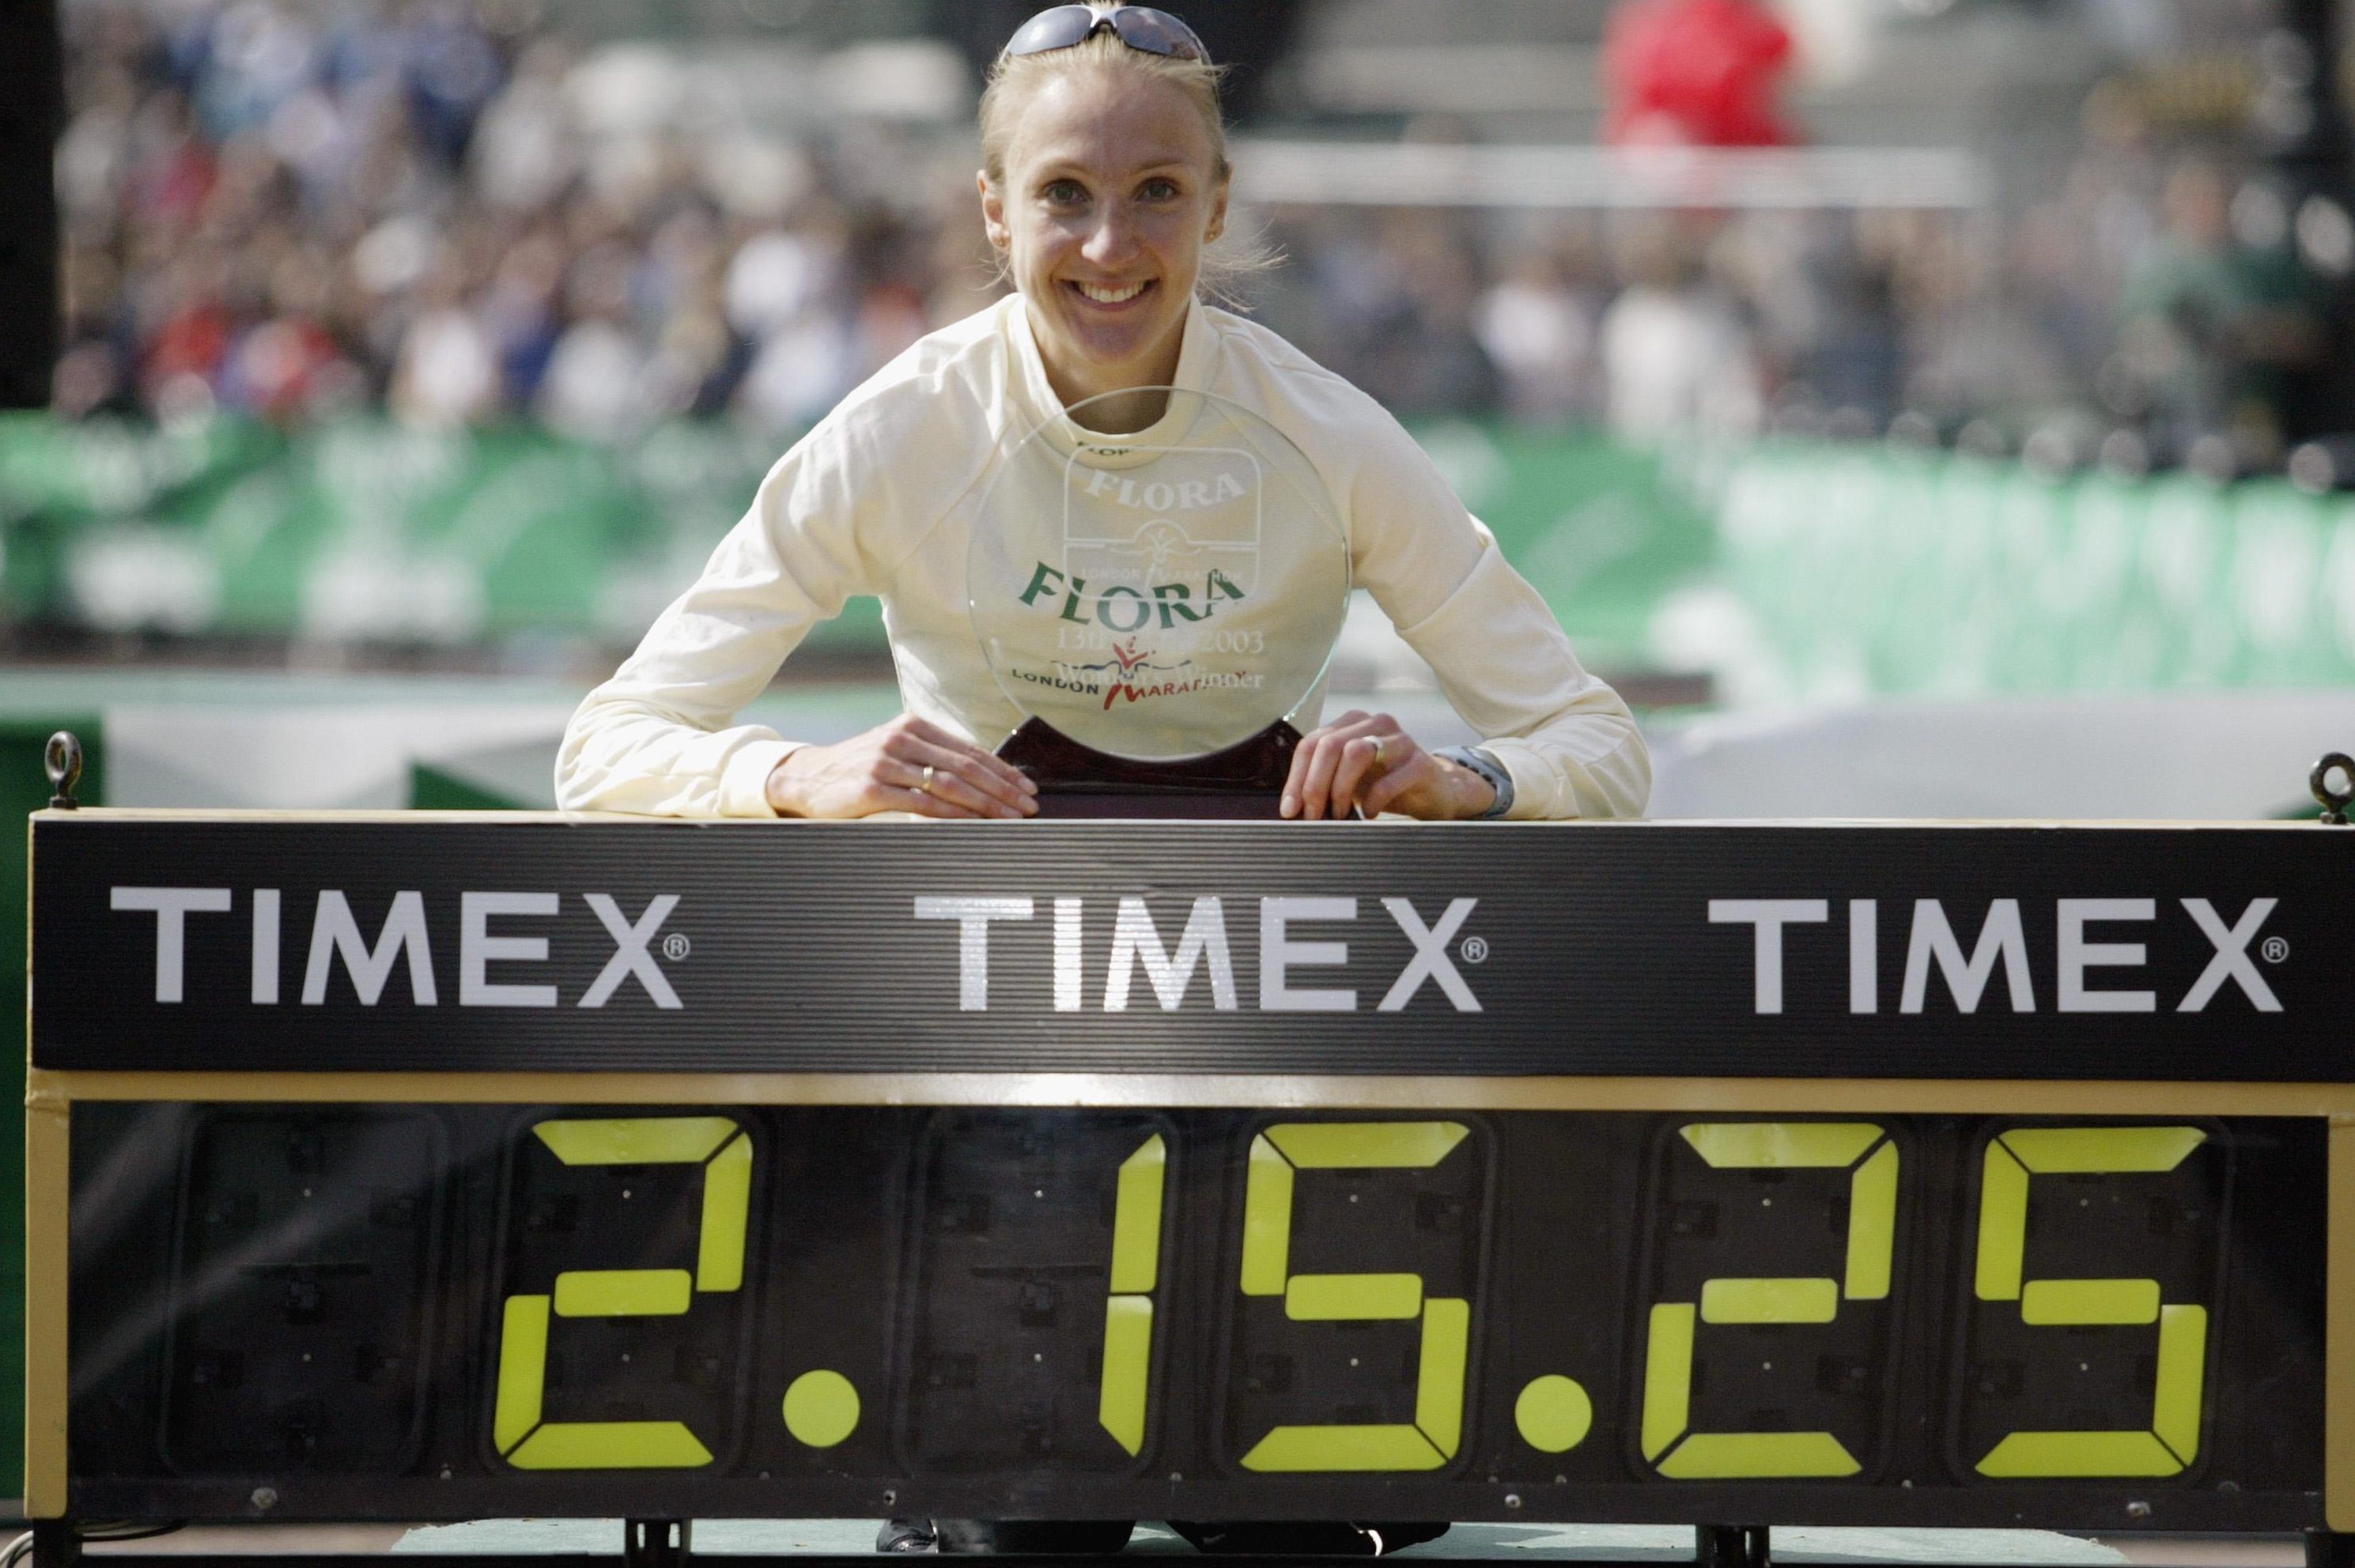 Paula Radcliffe's world record has stood since 2003